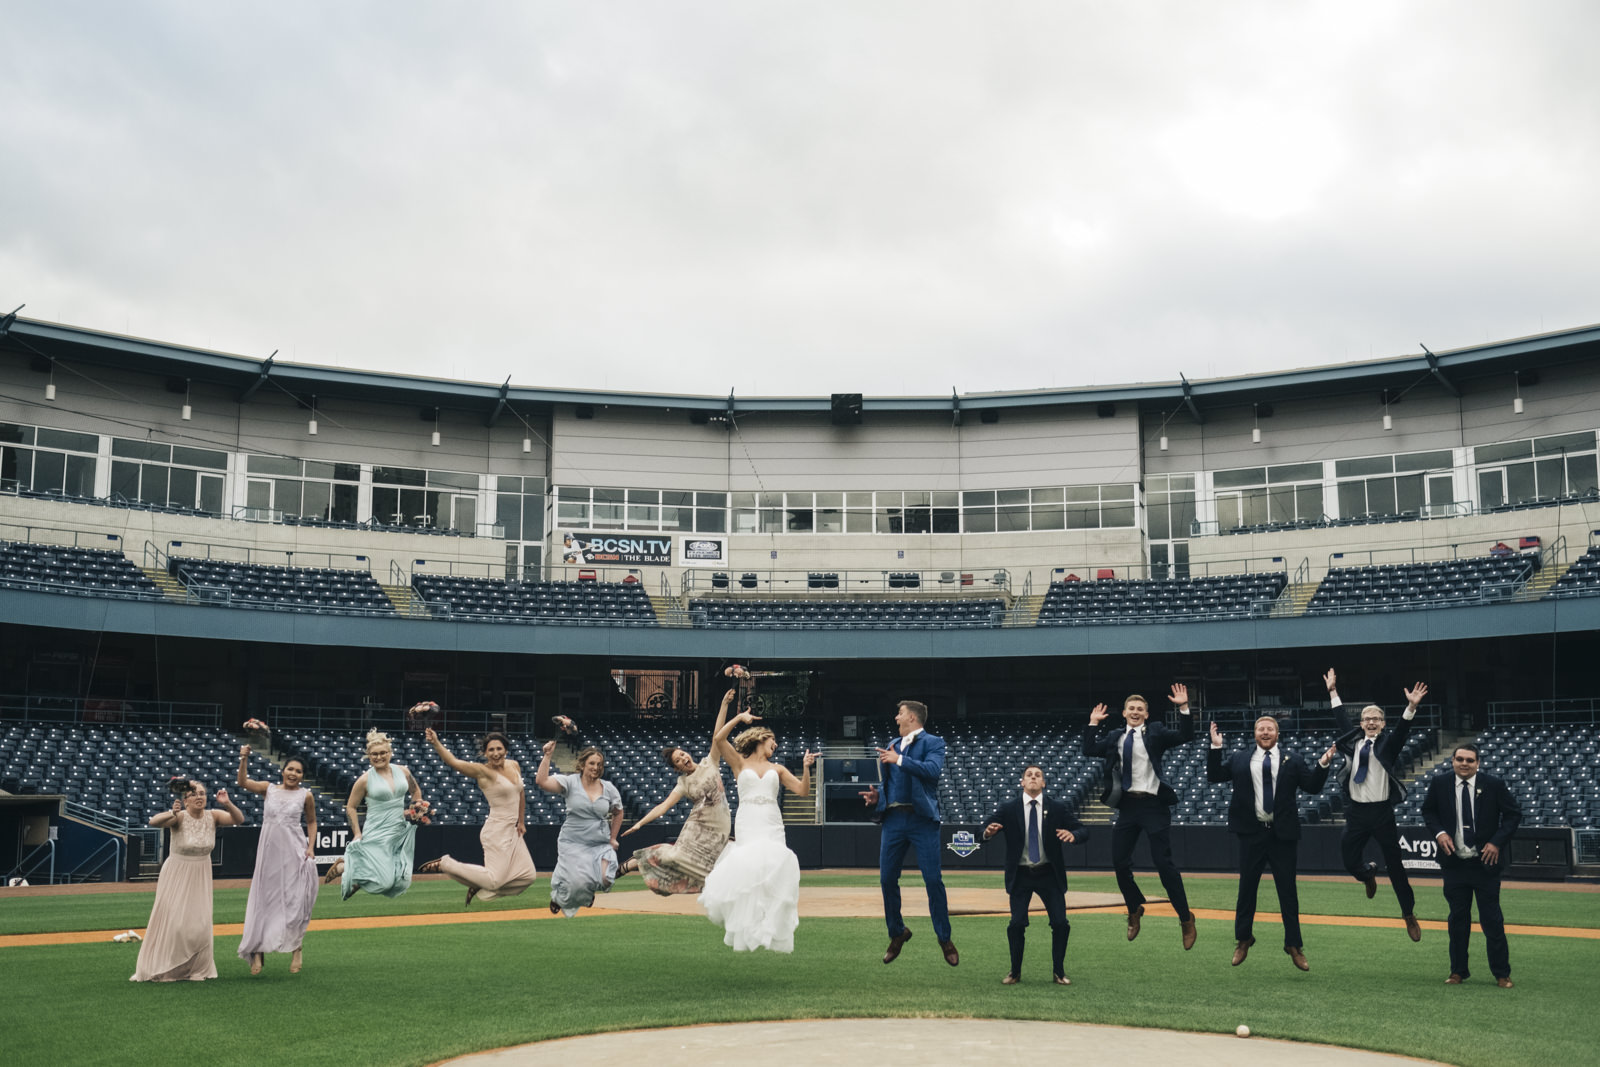 Bridal party wedding photography inside the Toledo Mudhen's Stadium by Hensville.